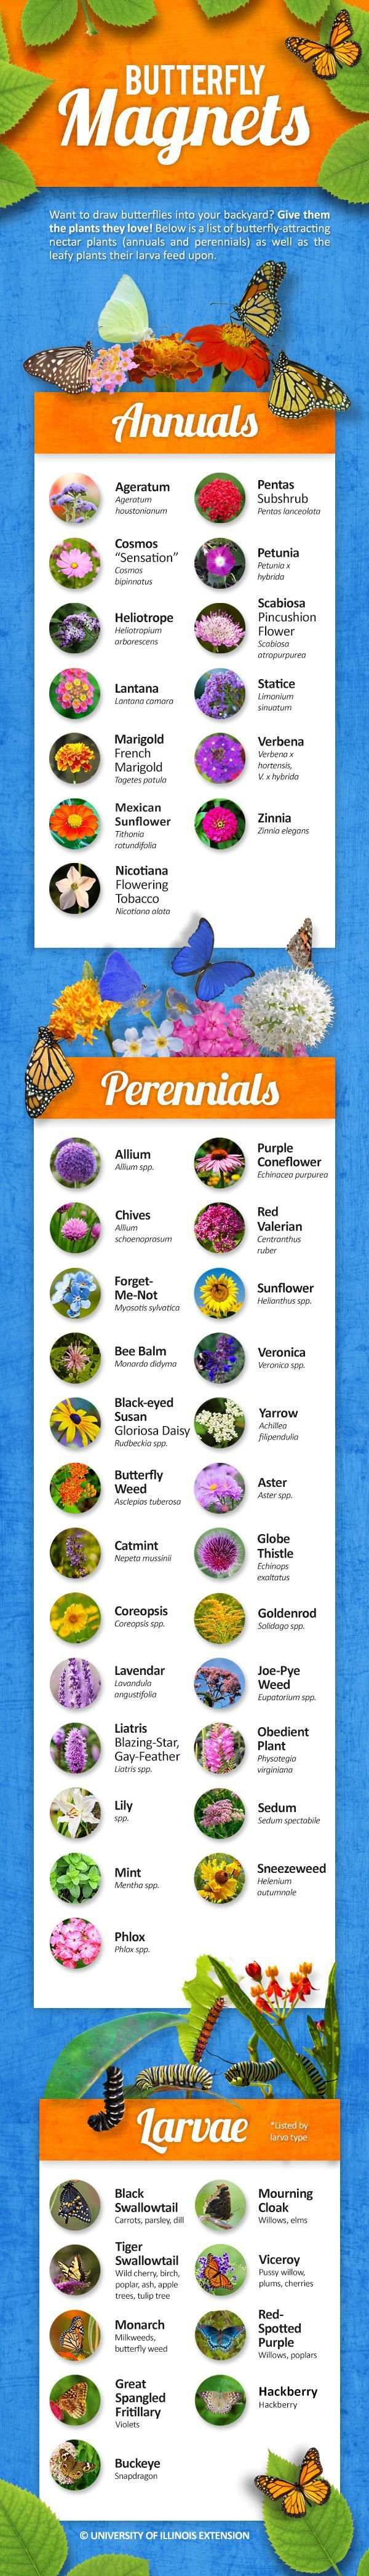 UPDATED Infographic: Want more butterflies in your yard? Plant the nectar plants they love! Here's a great list of butterfly-attracting annual and perennial plants — including those needed for butterfly larvae. #garden #gardening